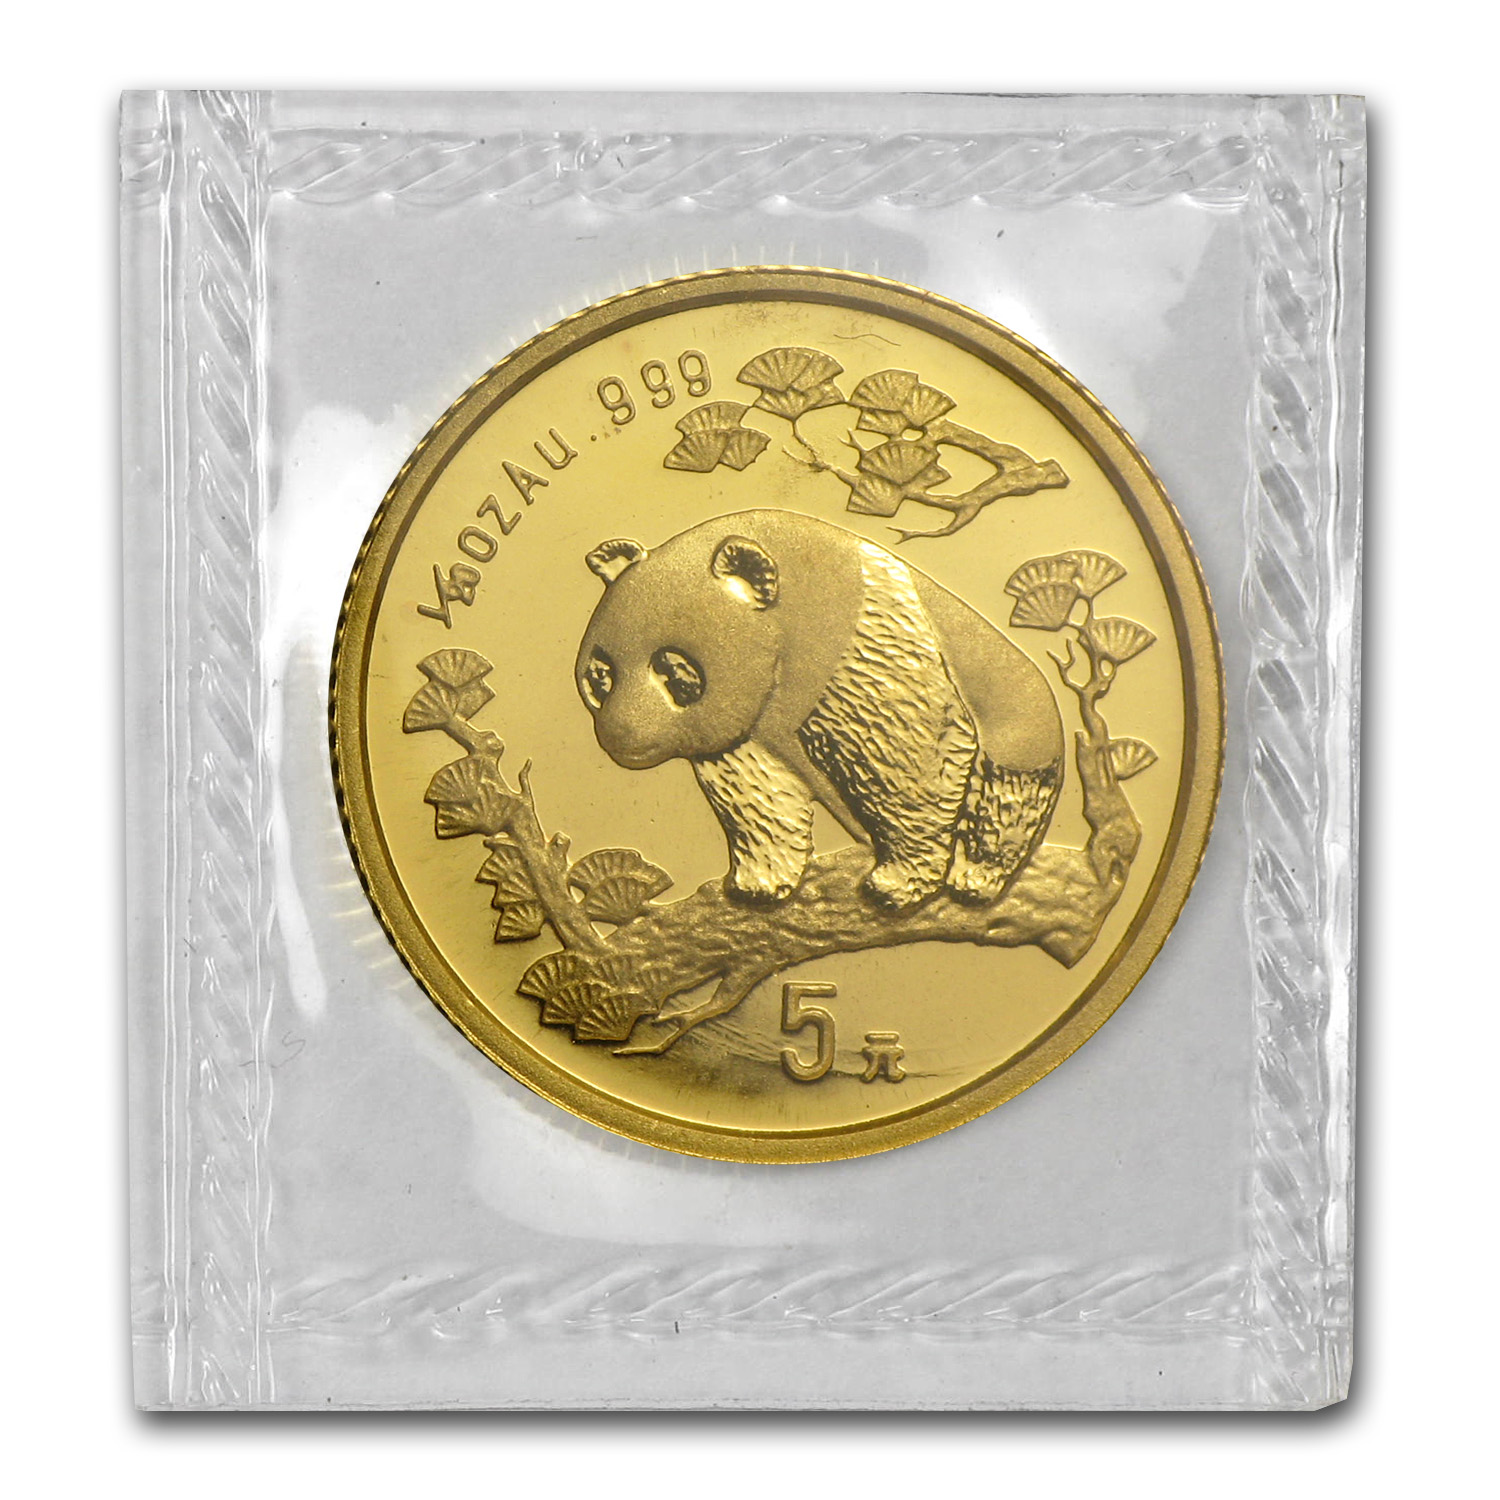 1997 China 1/20 oz Gold Panda Large Date BU (Sealed)